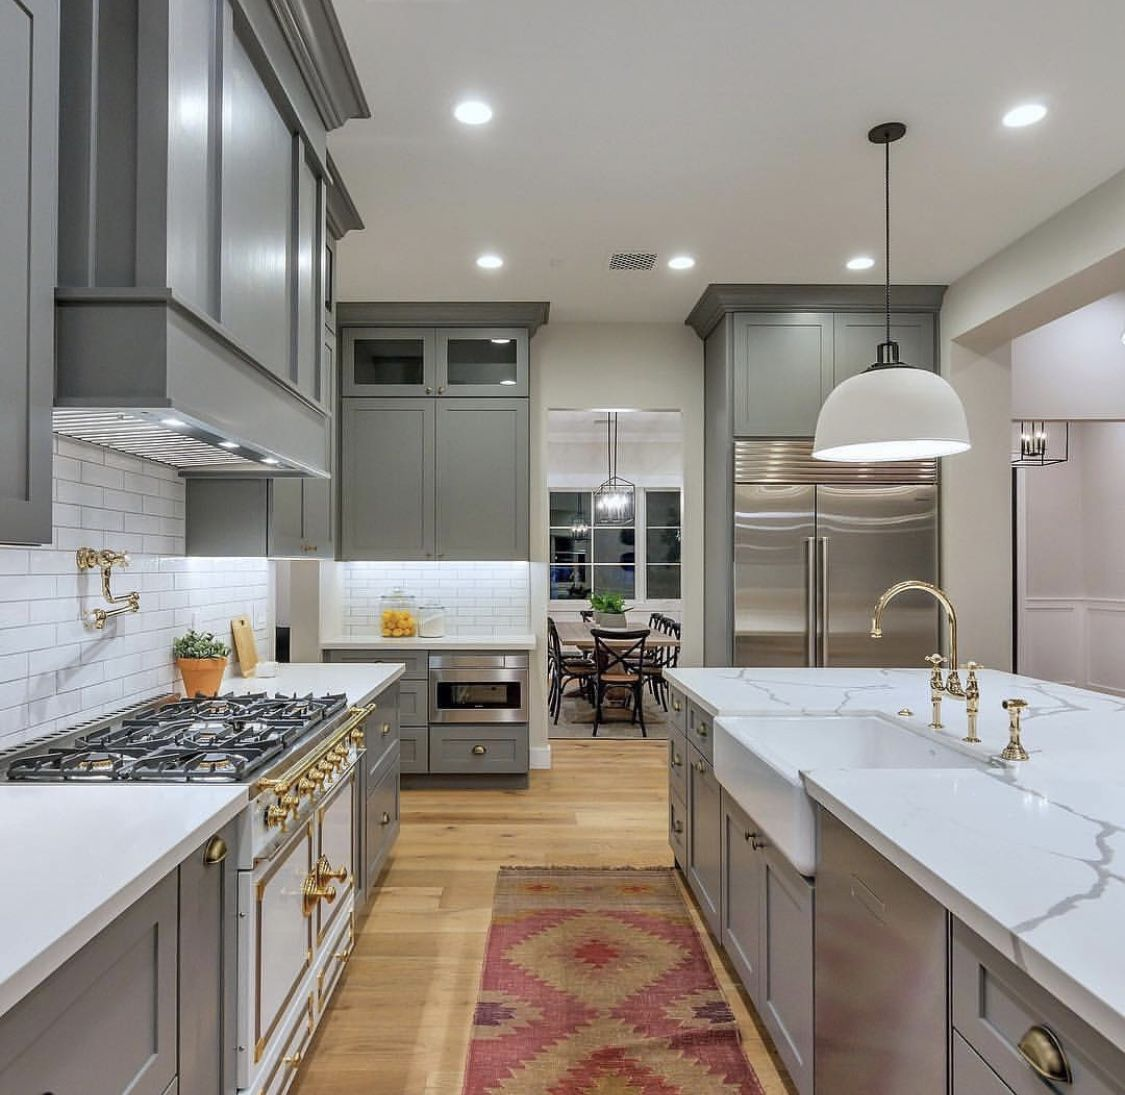 The Easiest Way To Renovate Your Kitchen: Pin By Vanessa Yan On Kitchen 2.0